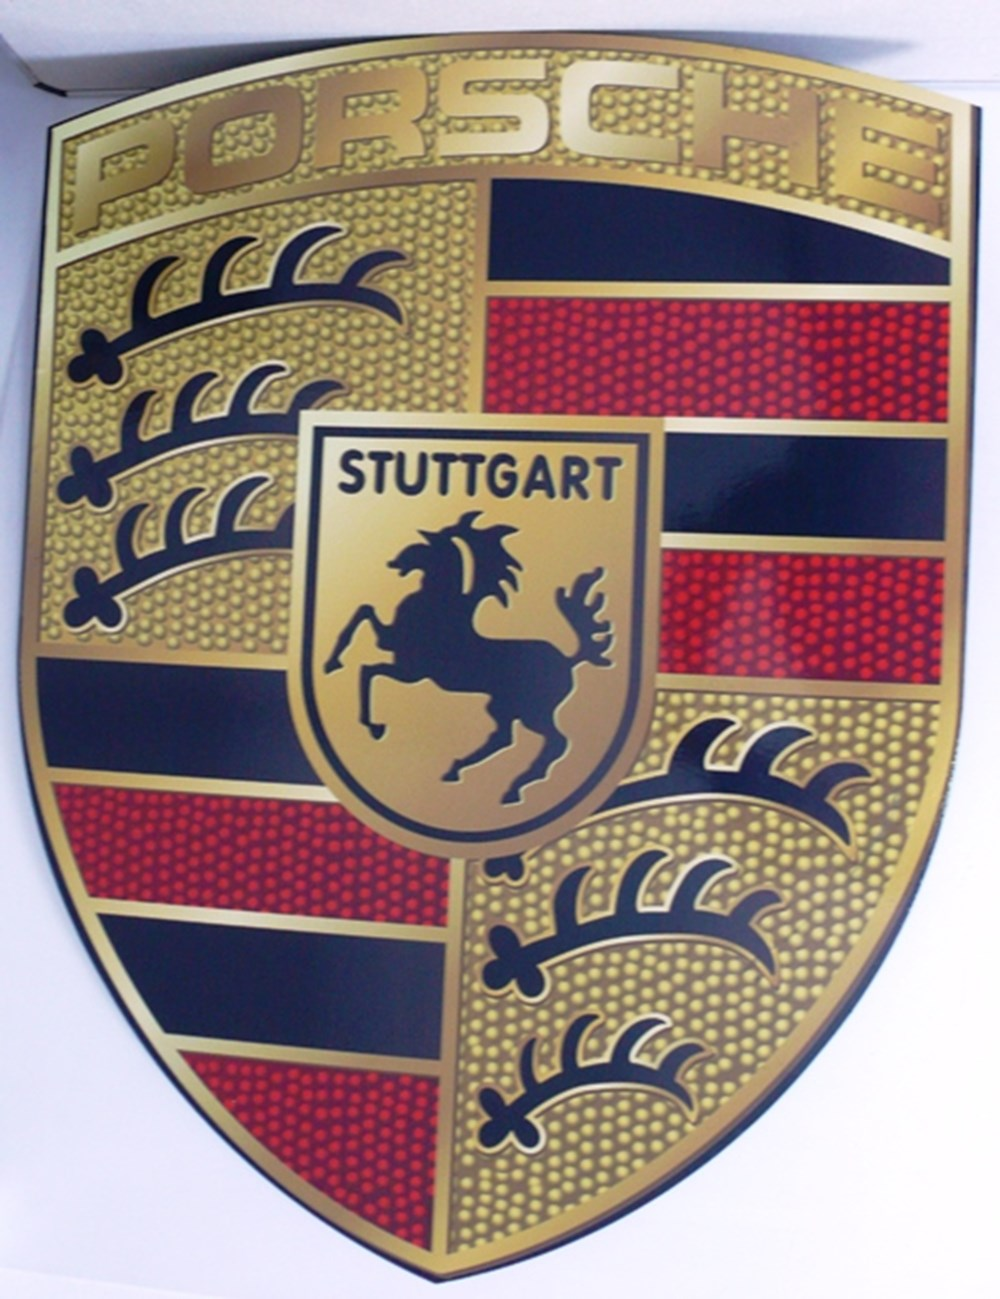 Lot 092 - Porsche wall plaque